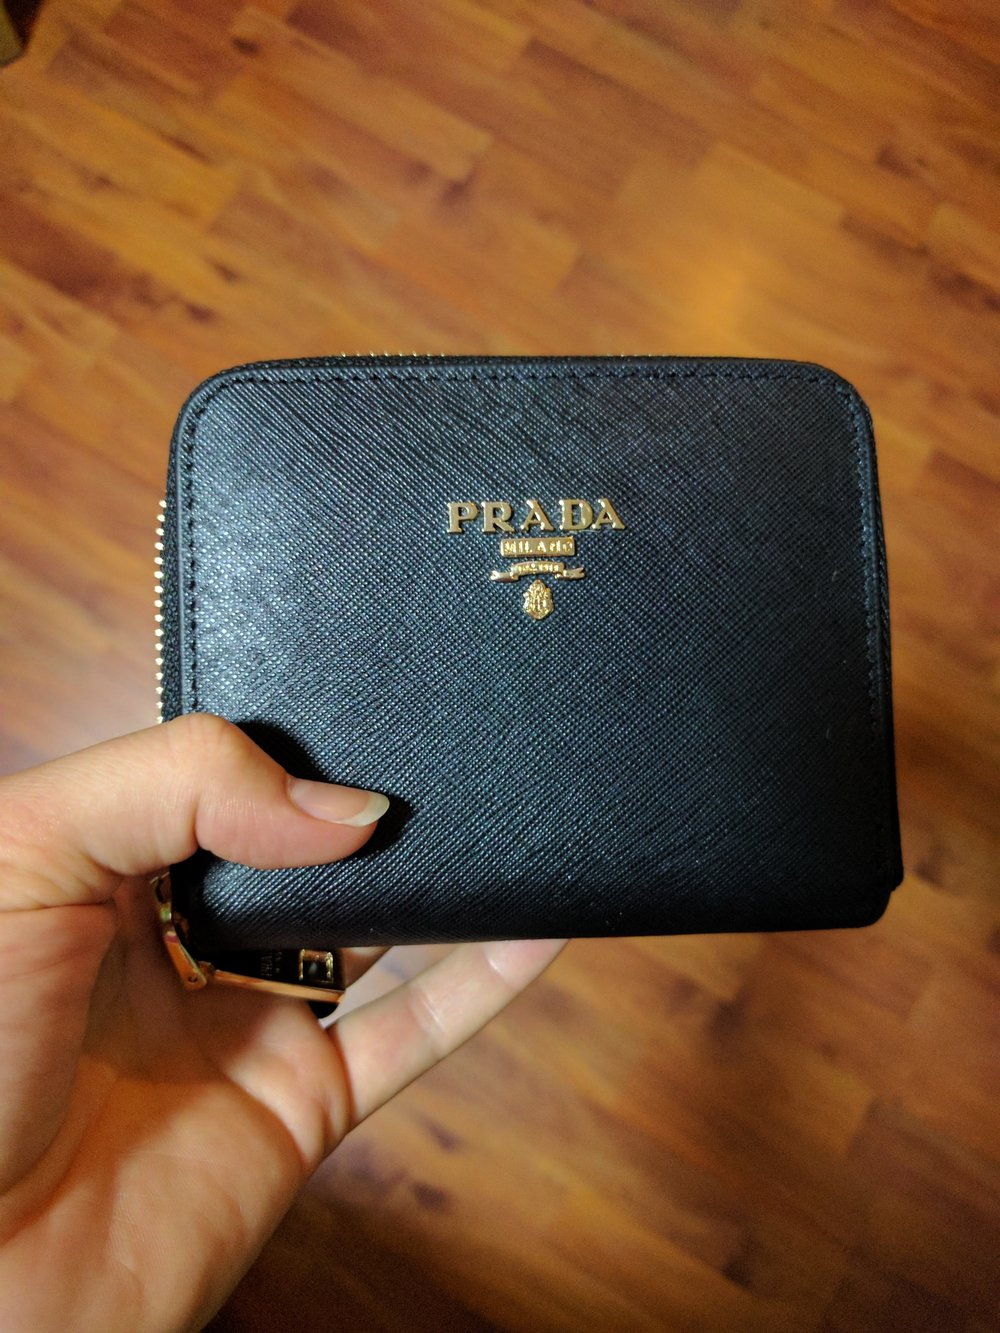 I picked up a Frada wallet for 150,000 dong, or $6.60. All of the Louis Vuitton bags I saw looked pretty legit too!